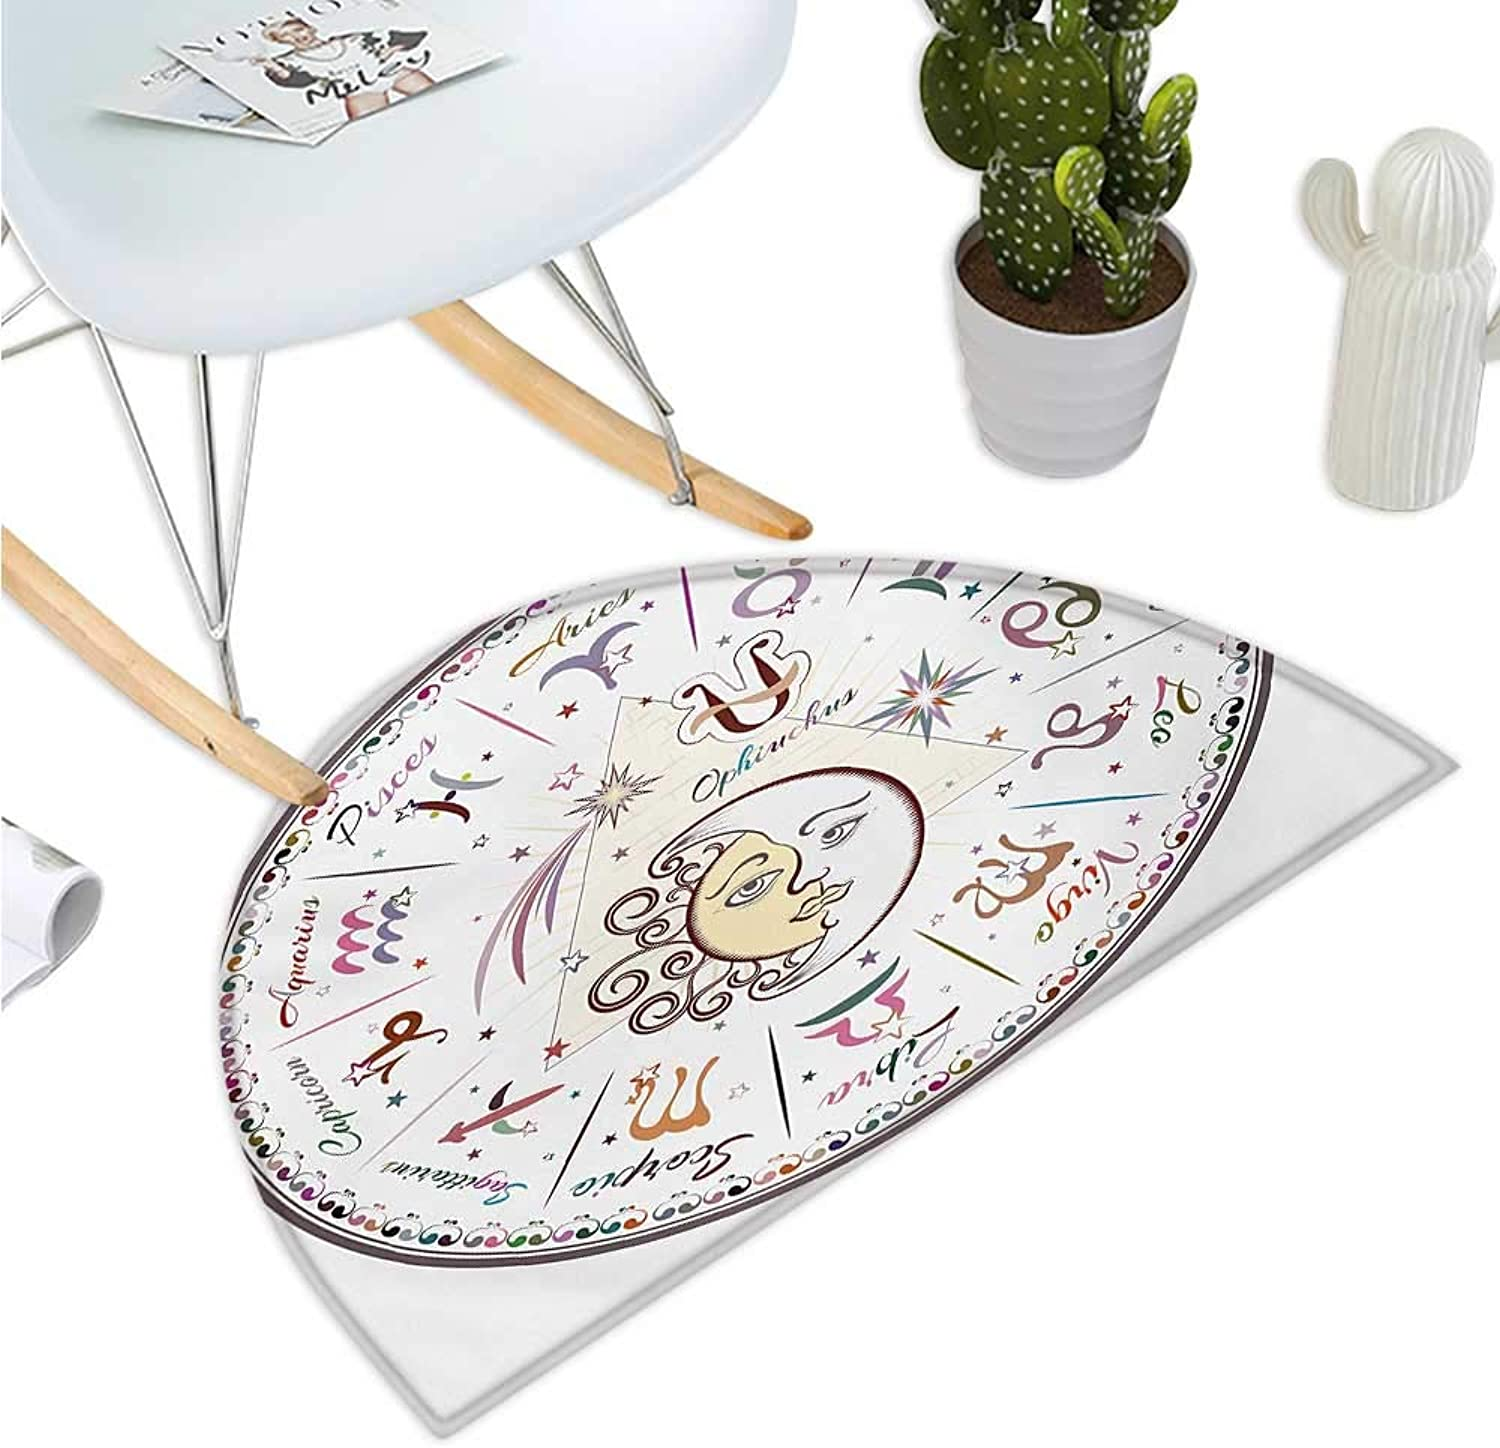 Zodiac Semicircle Doormat Western Chart with All Signs Aries Virgo Leo Taurus Libra Mystique Fate Calendar Entry Door Mat H 39.3  xD 59  Multicolor